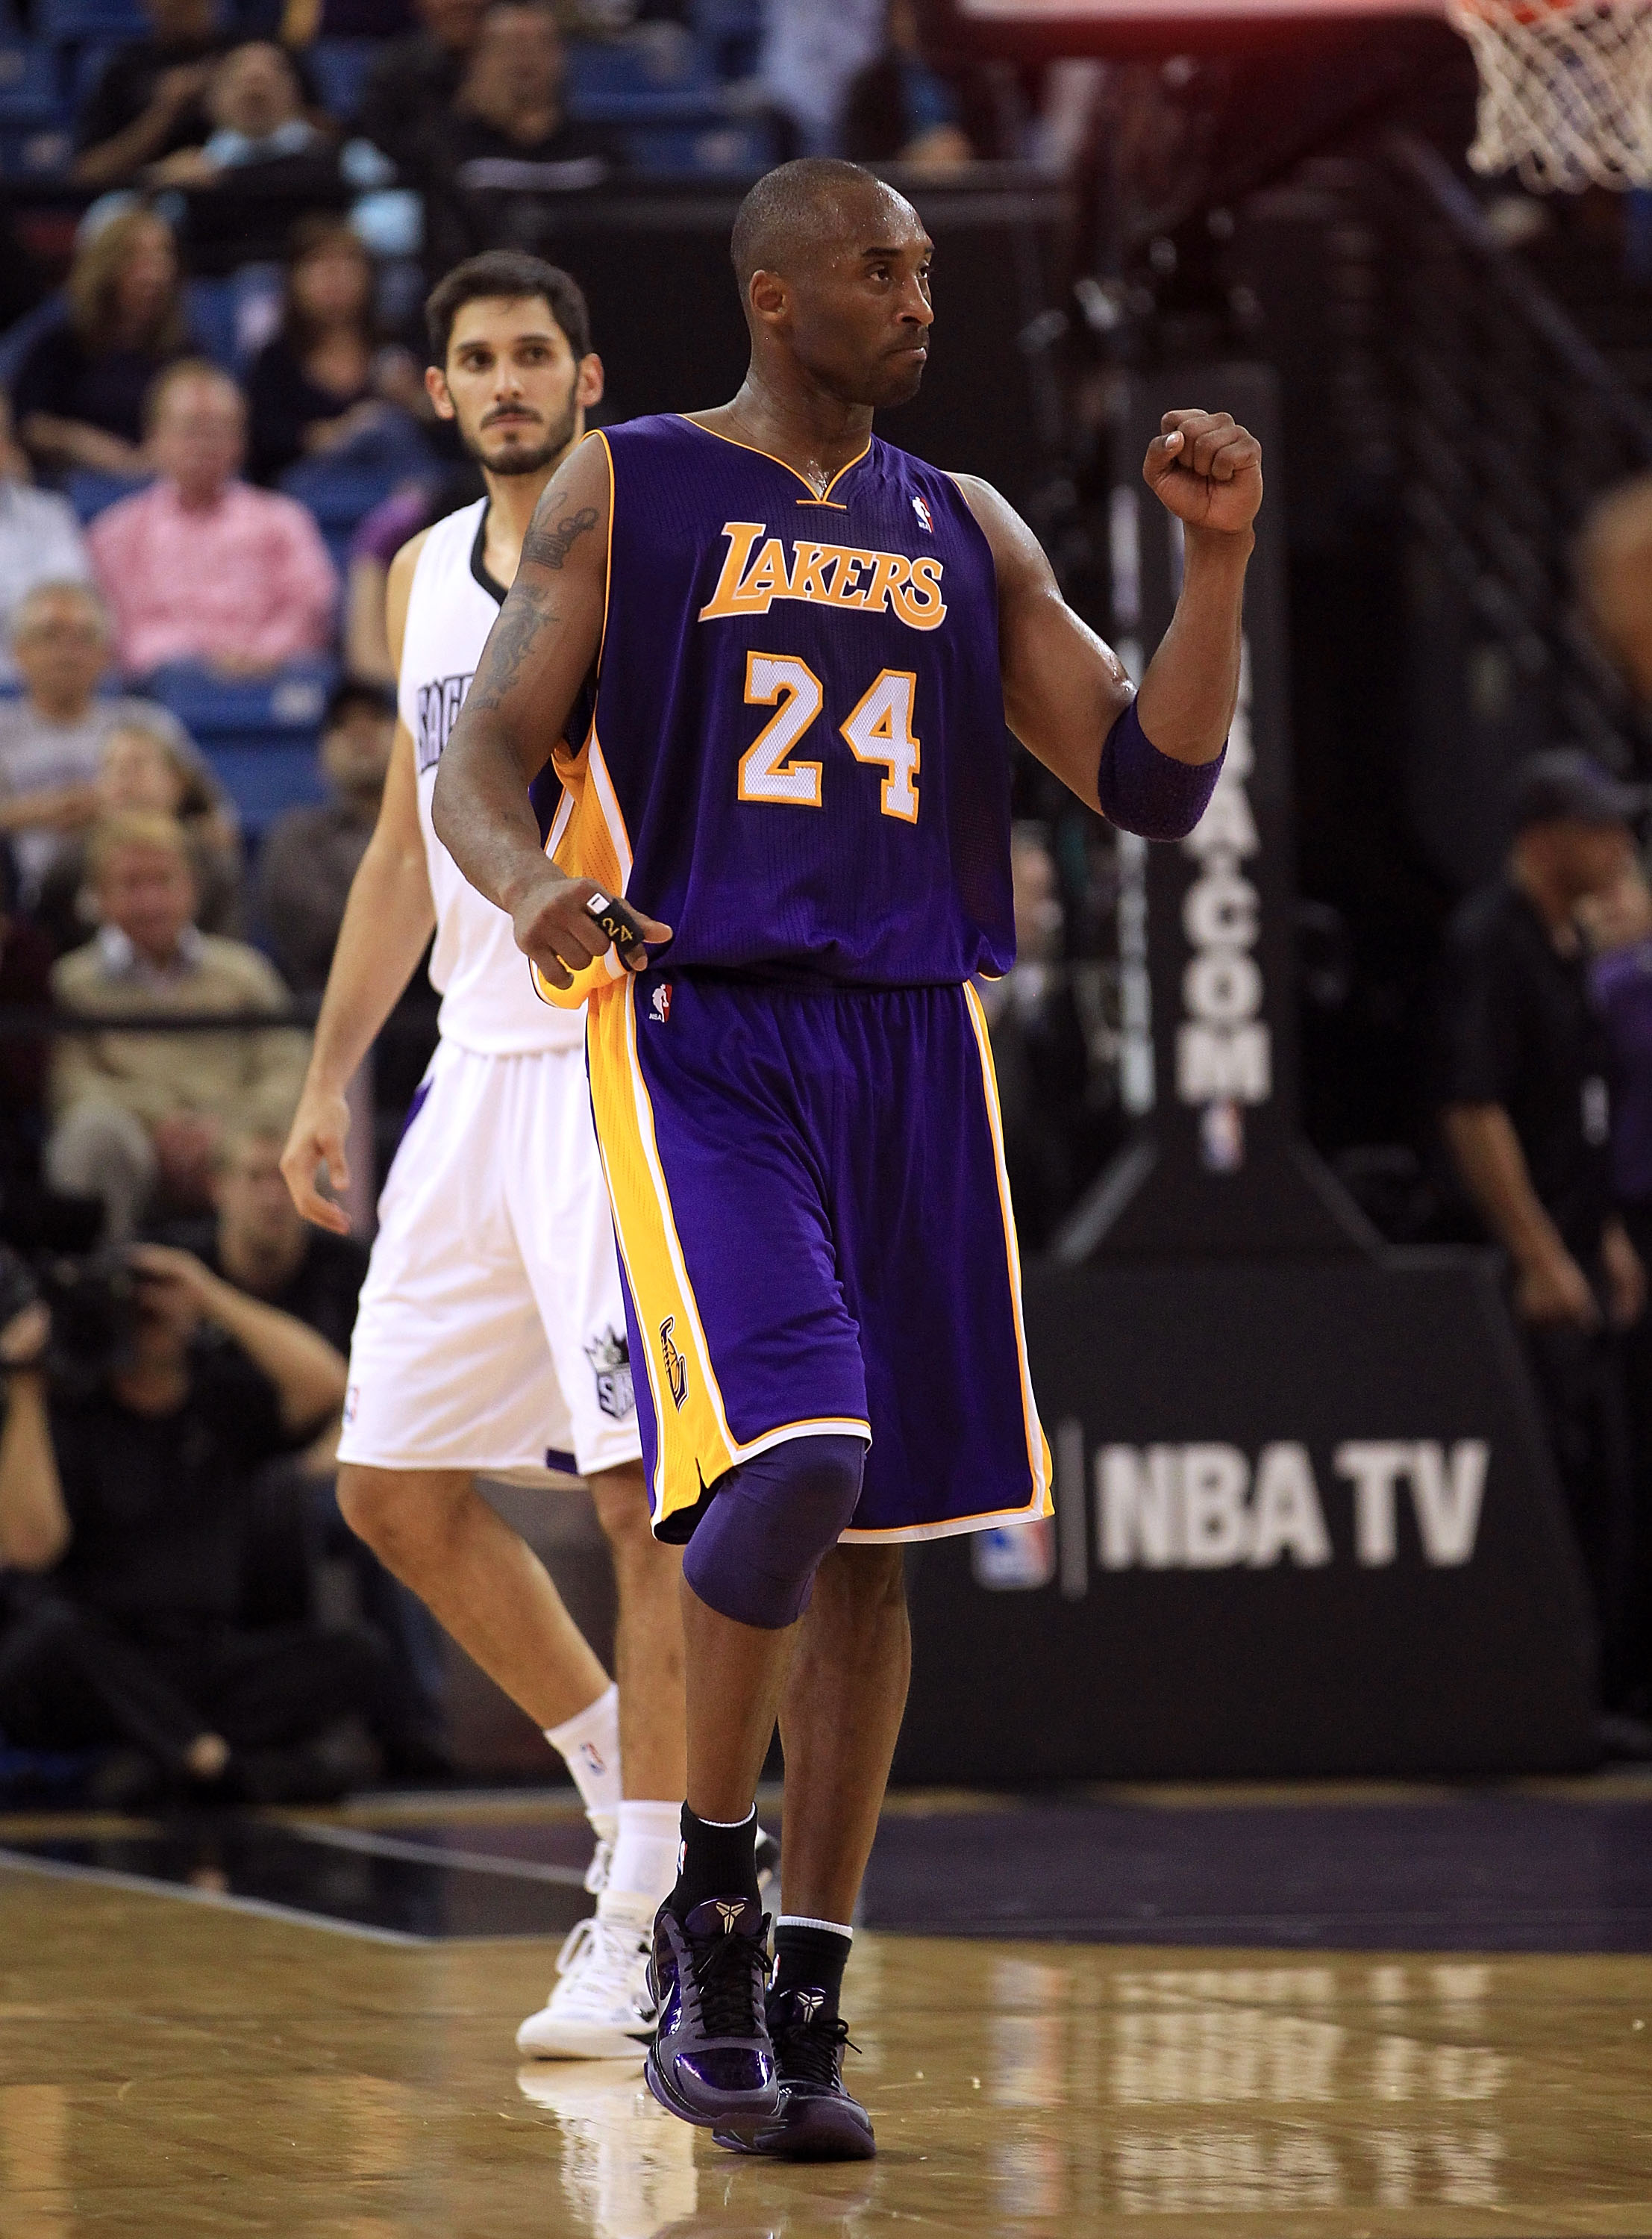 SACRAMENTO, CA - NOVEMBER 03:  Kobe Bryant #24 of the Los Angeles Lakers reacts after a shot during their game against the Sacramento Kings at ARCO Arena on November 3, 2010 in Sacramento, California.  NOTE TO USER: User expressly acknowledges and agrees